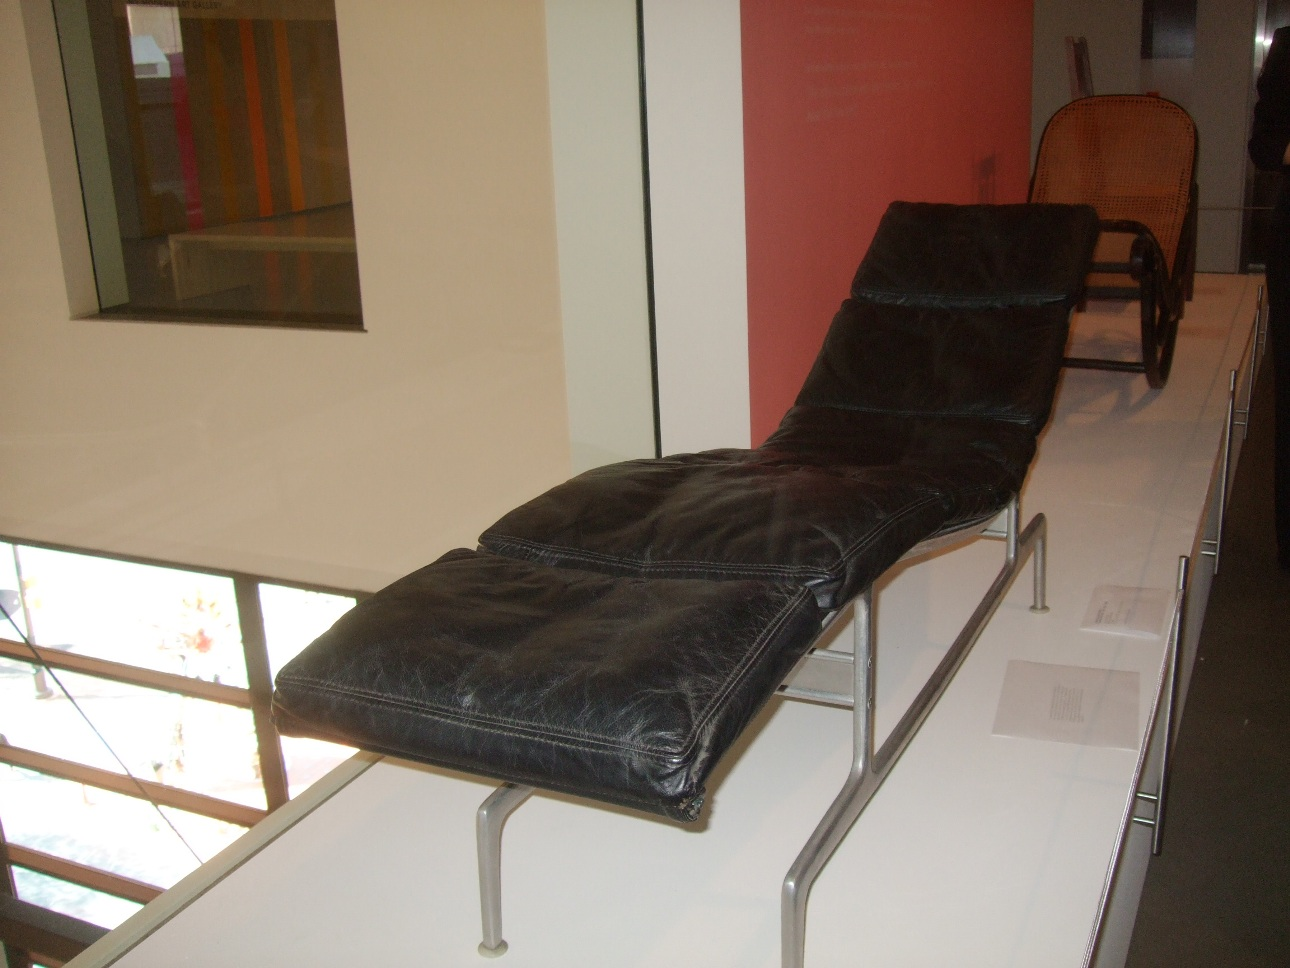 CHARLOTTE FIVE – Why Billy Wilder's Couch is on Display at the Bechtler.